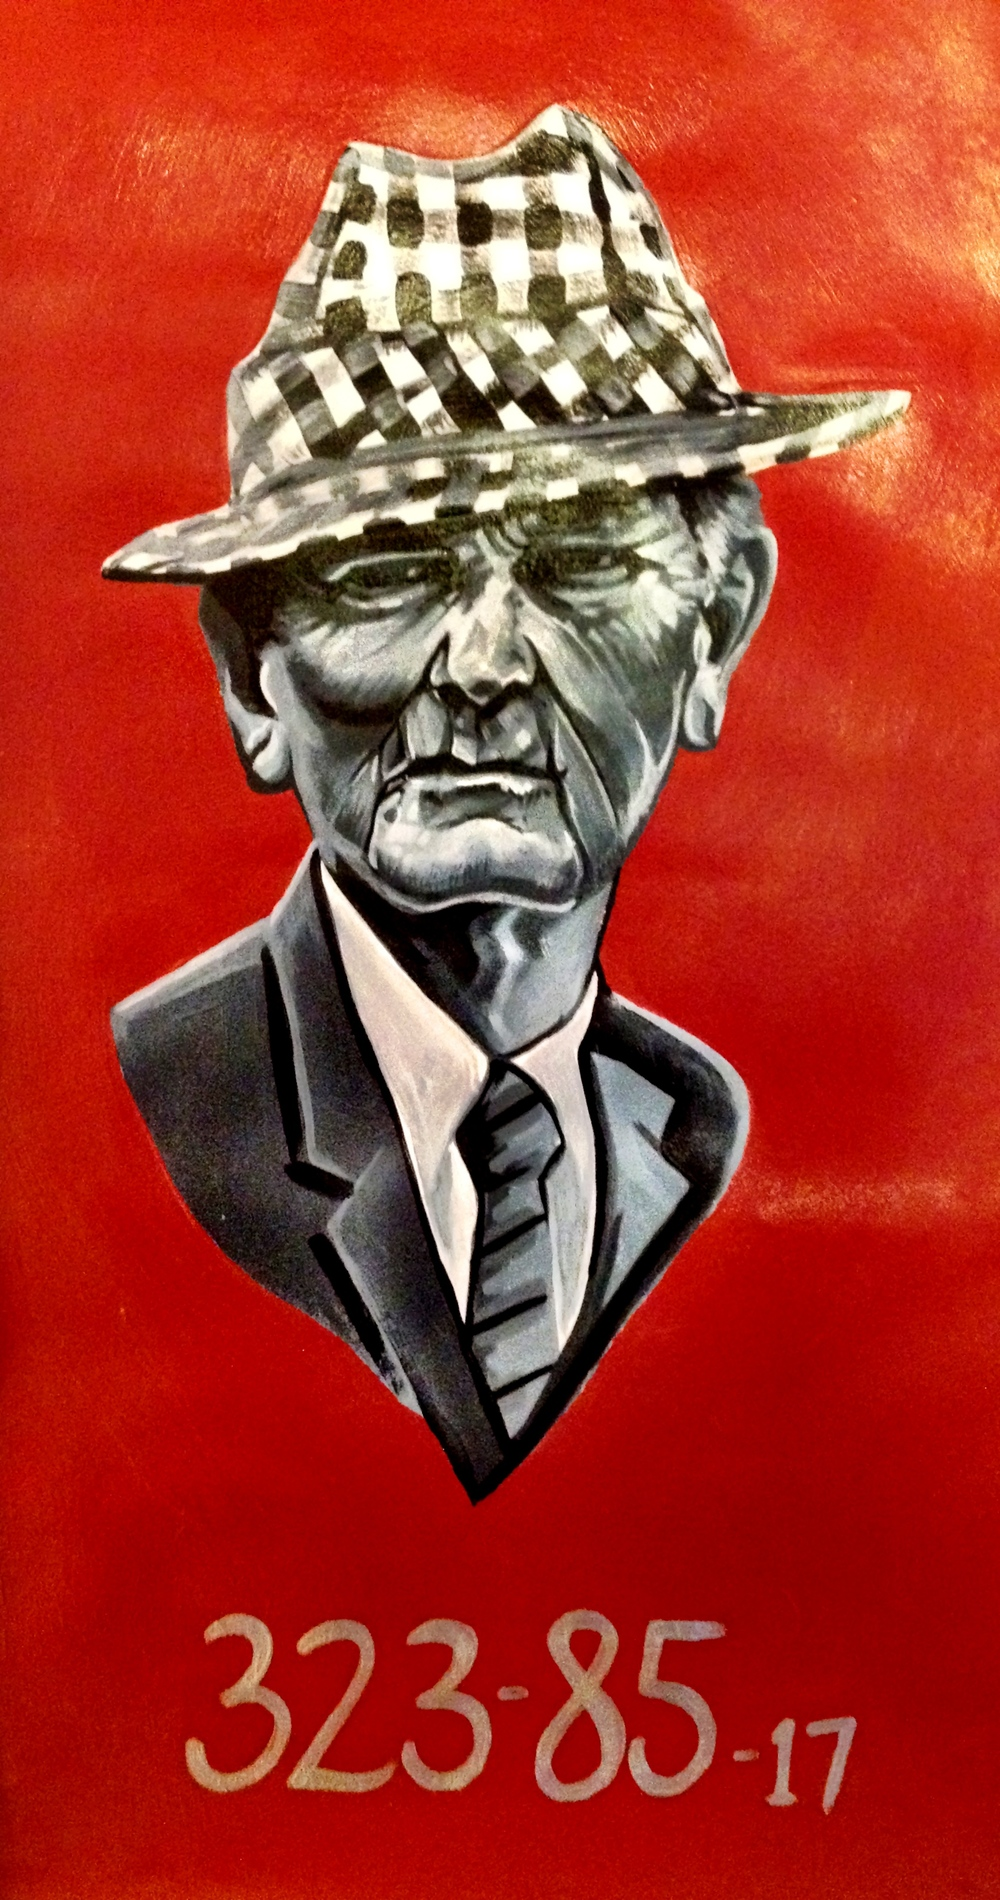 Bear Bryant sketch.JPG